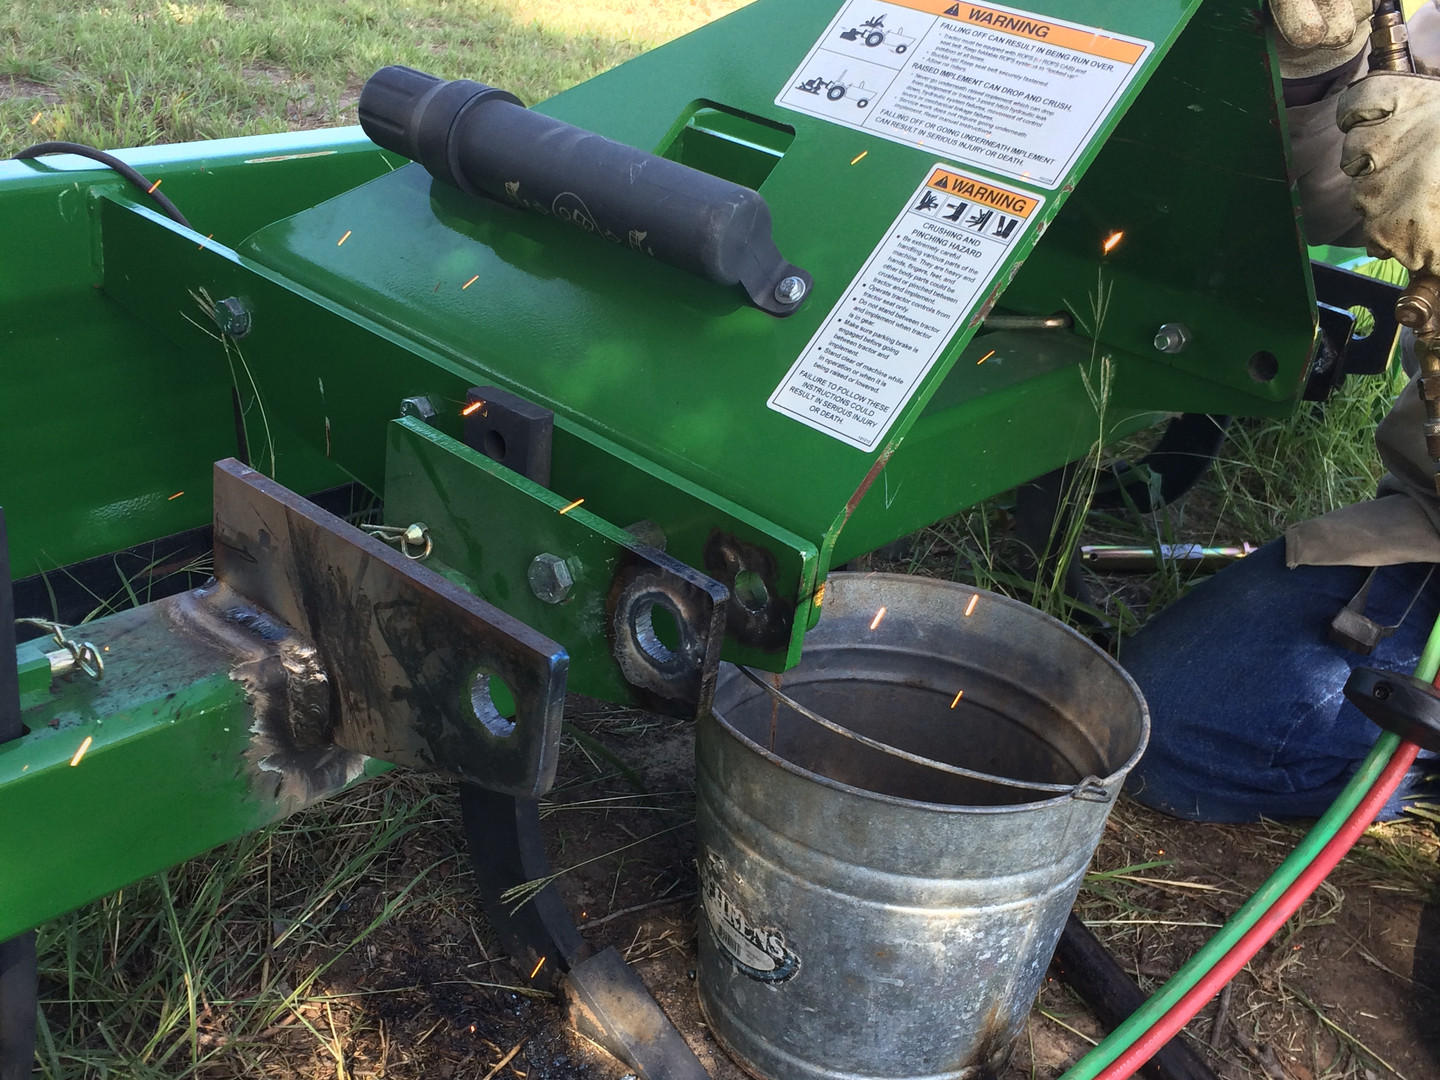 Farm equipment and maintenance repair services